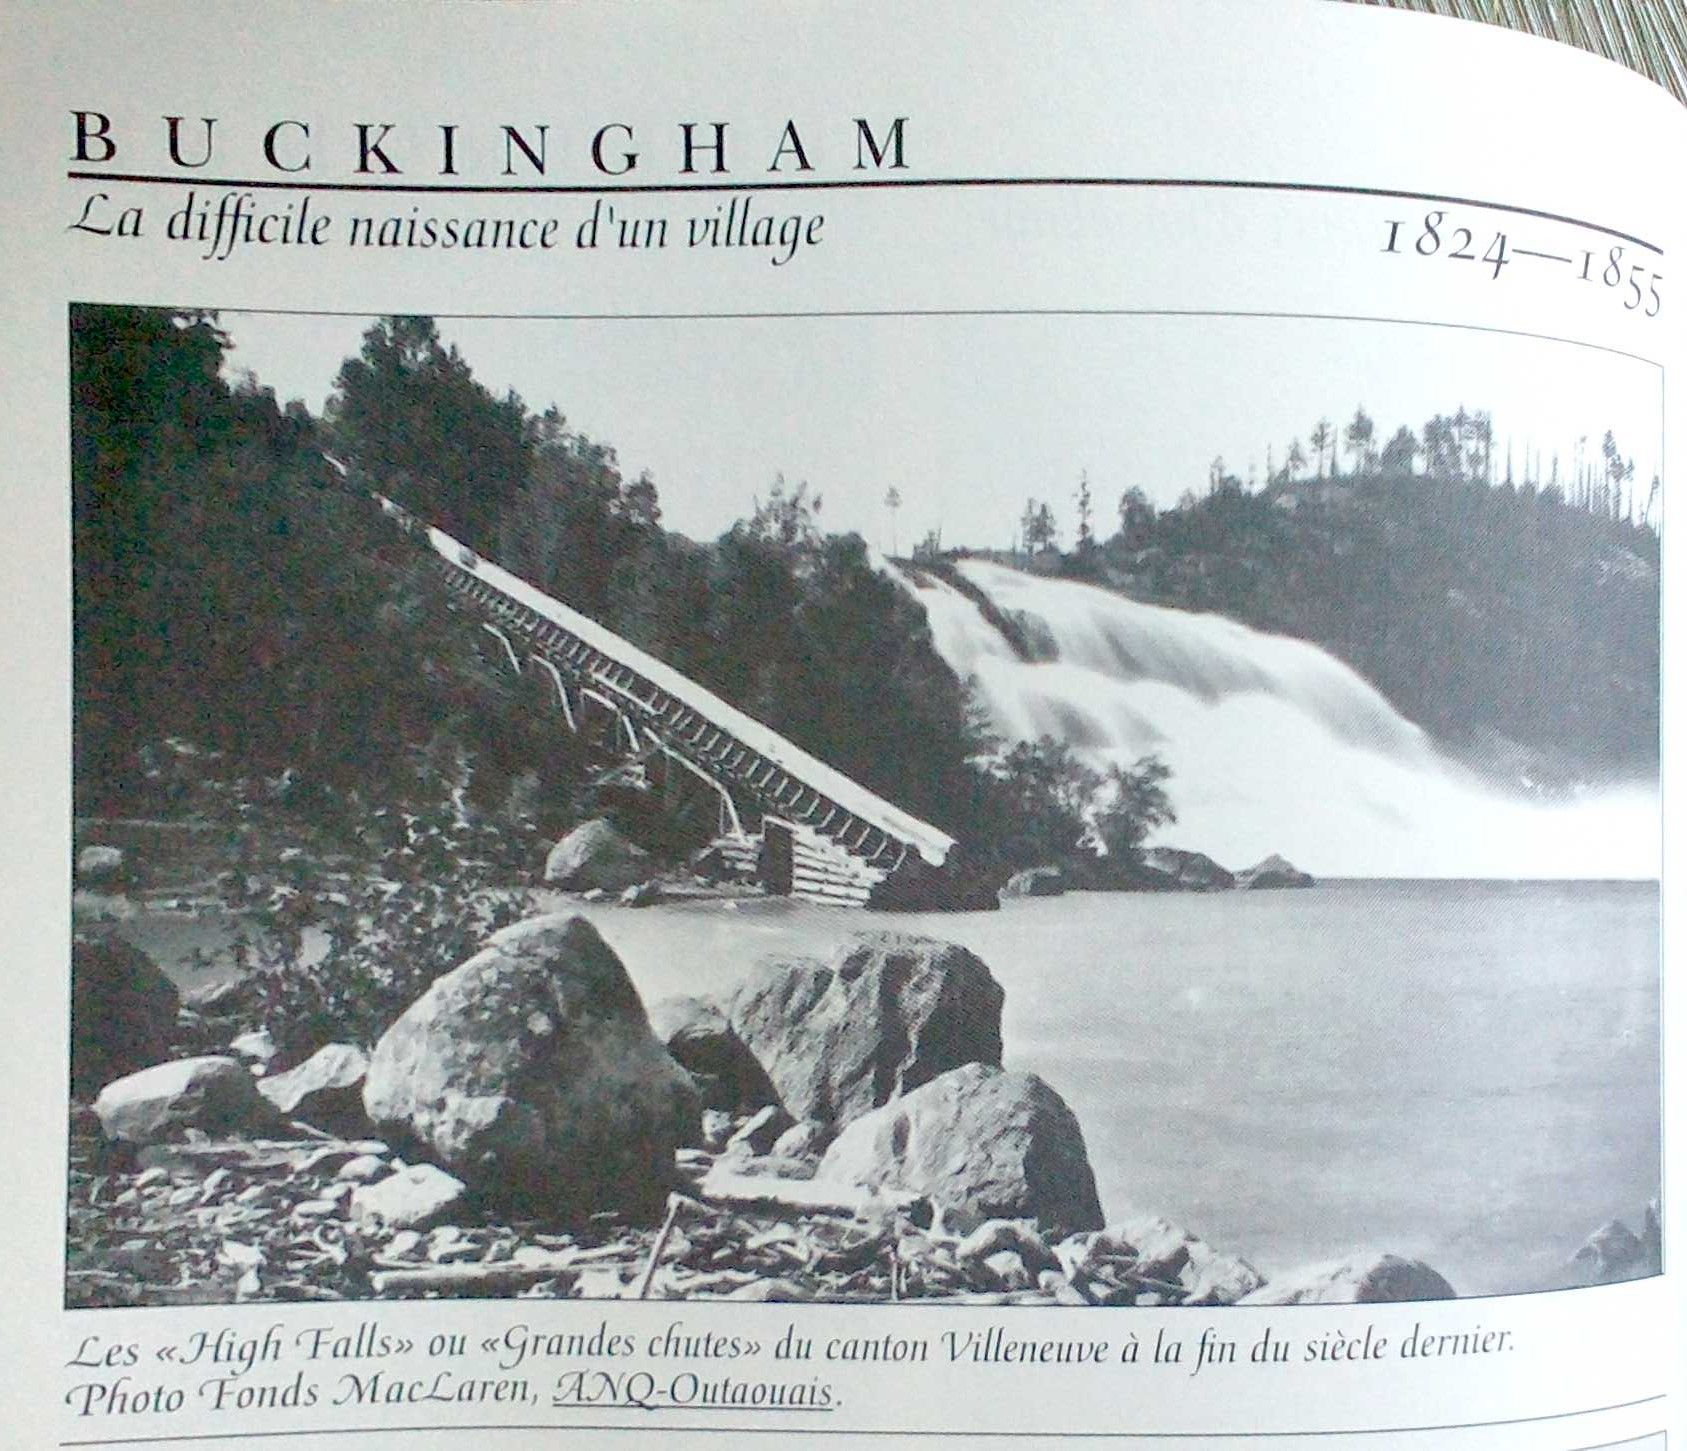 High Falls on the Lievre River, north of Buckingham